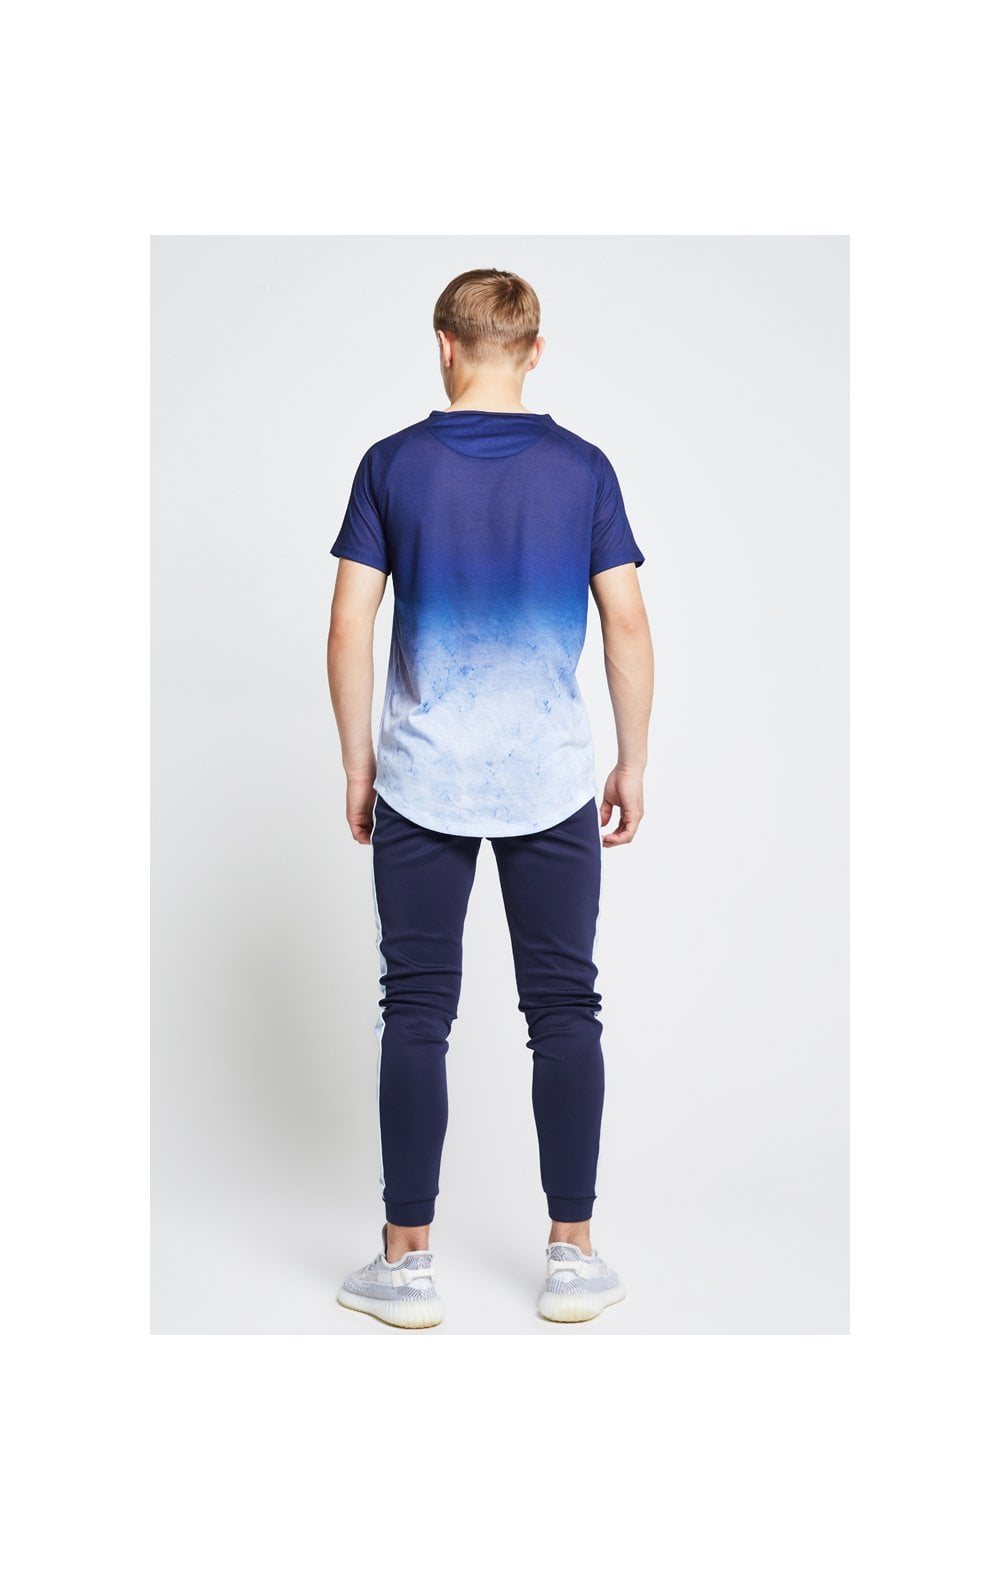 Illusive London Marble Fade Tee – Navy & Marble (4)